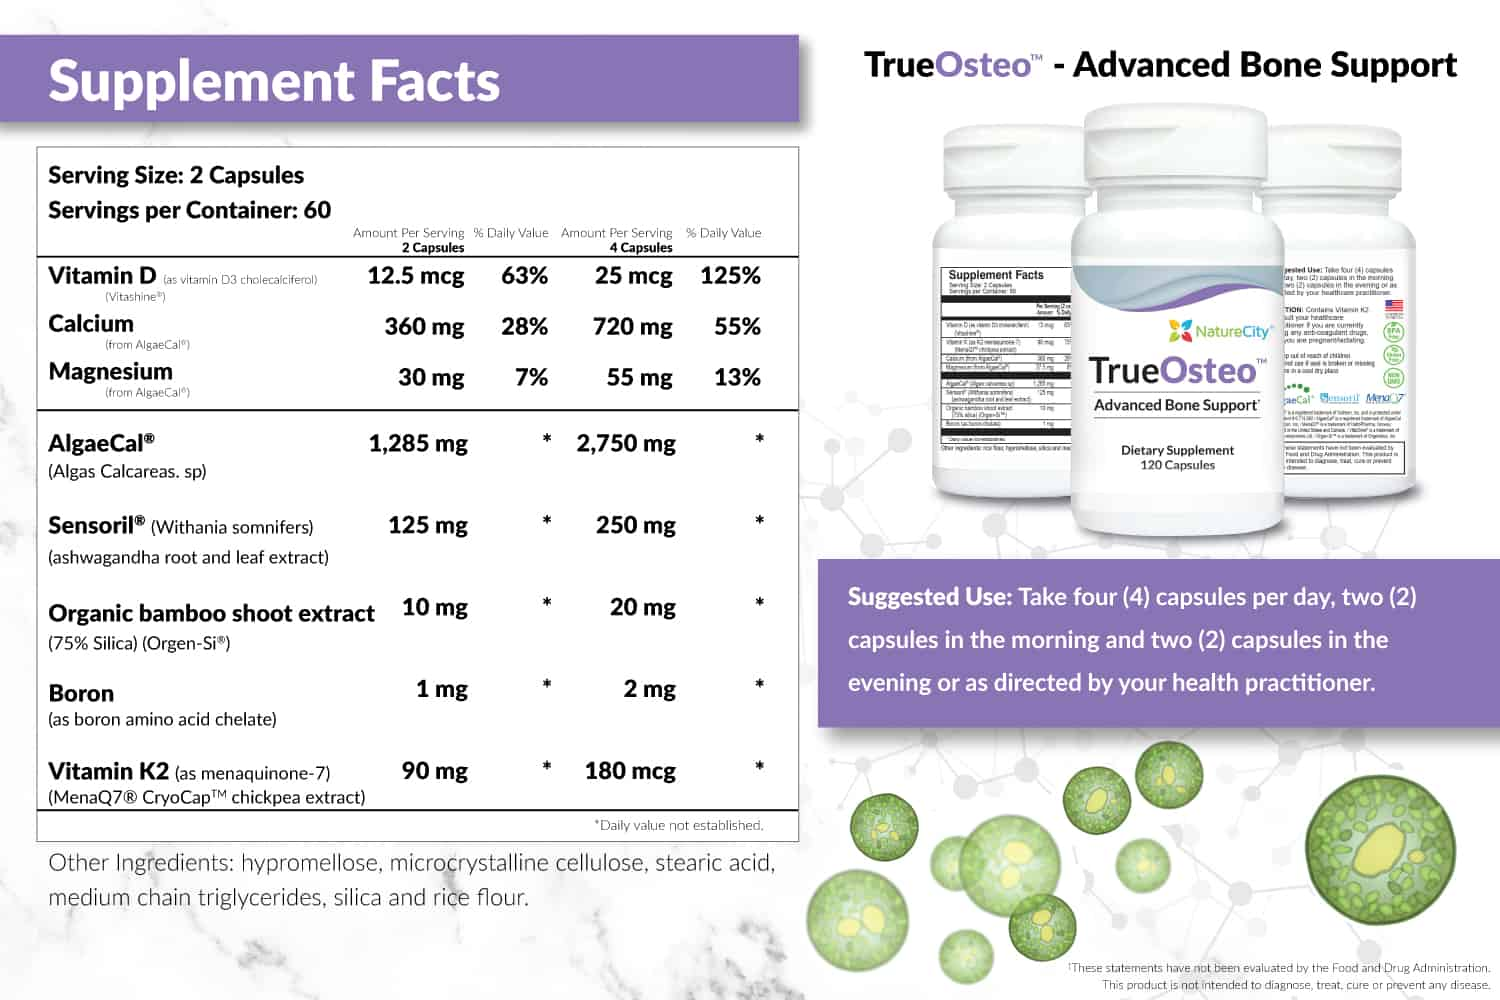 TrueOsteo Supplement Facts